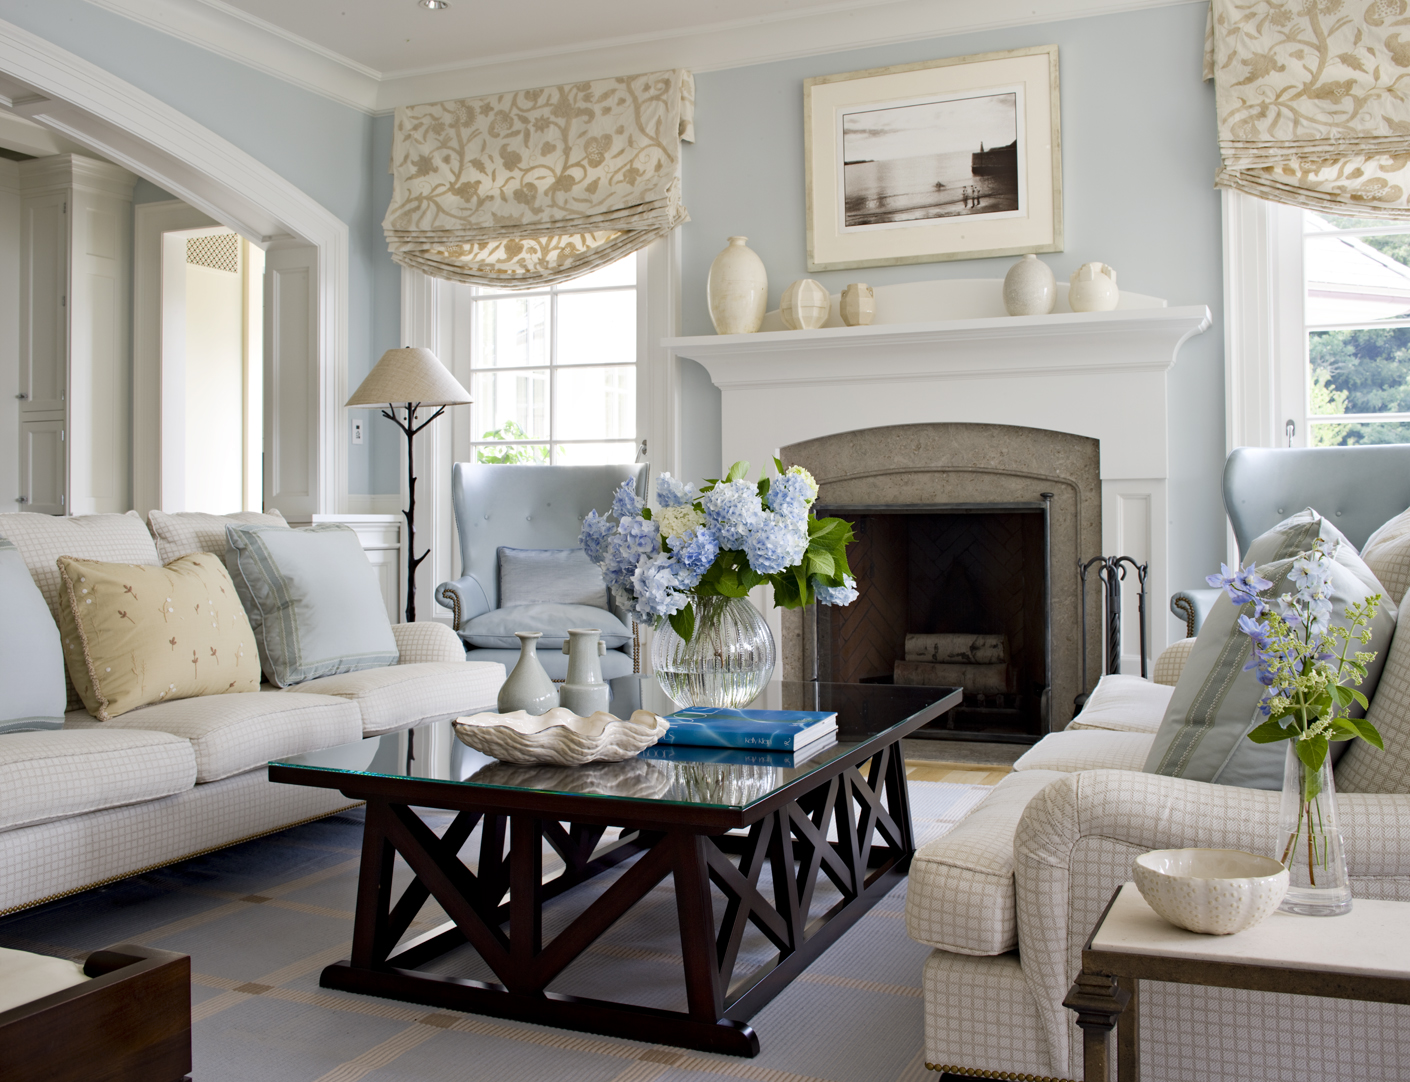 5 Only Avail D.2 PLUM INTERIORS  Image 1L.jpg